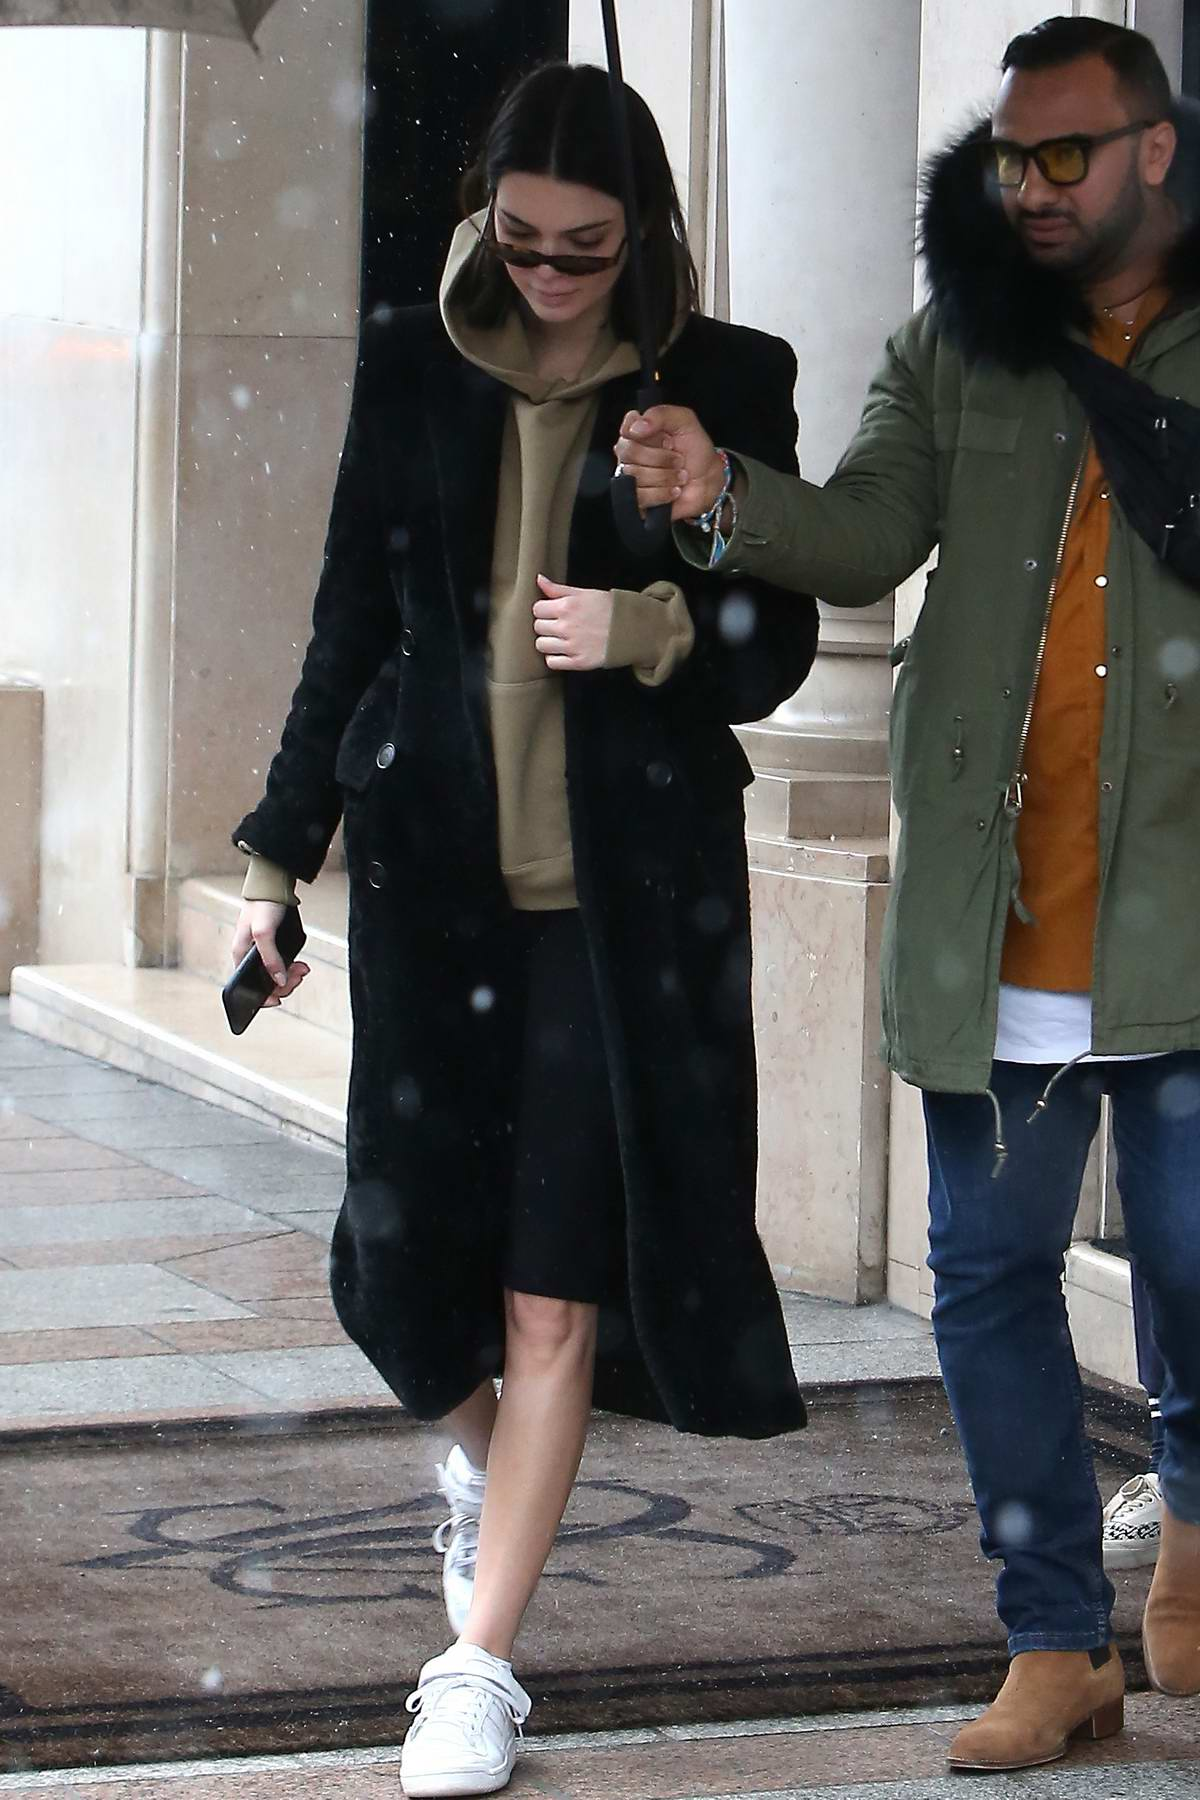 Kendall Jenner leaves her hotel in snowstorm as she heads for a photoshoot in Paris, France